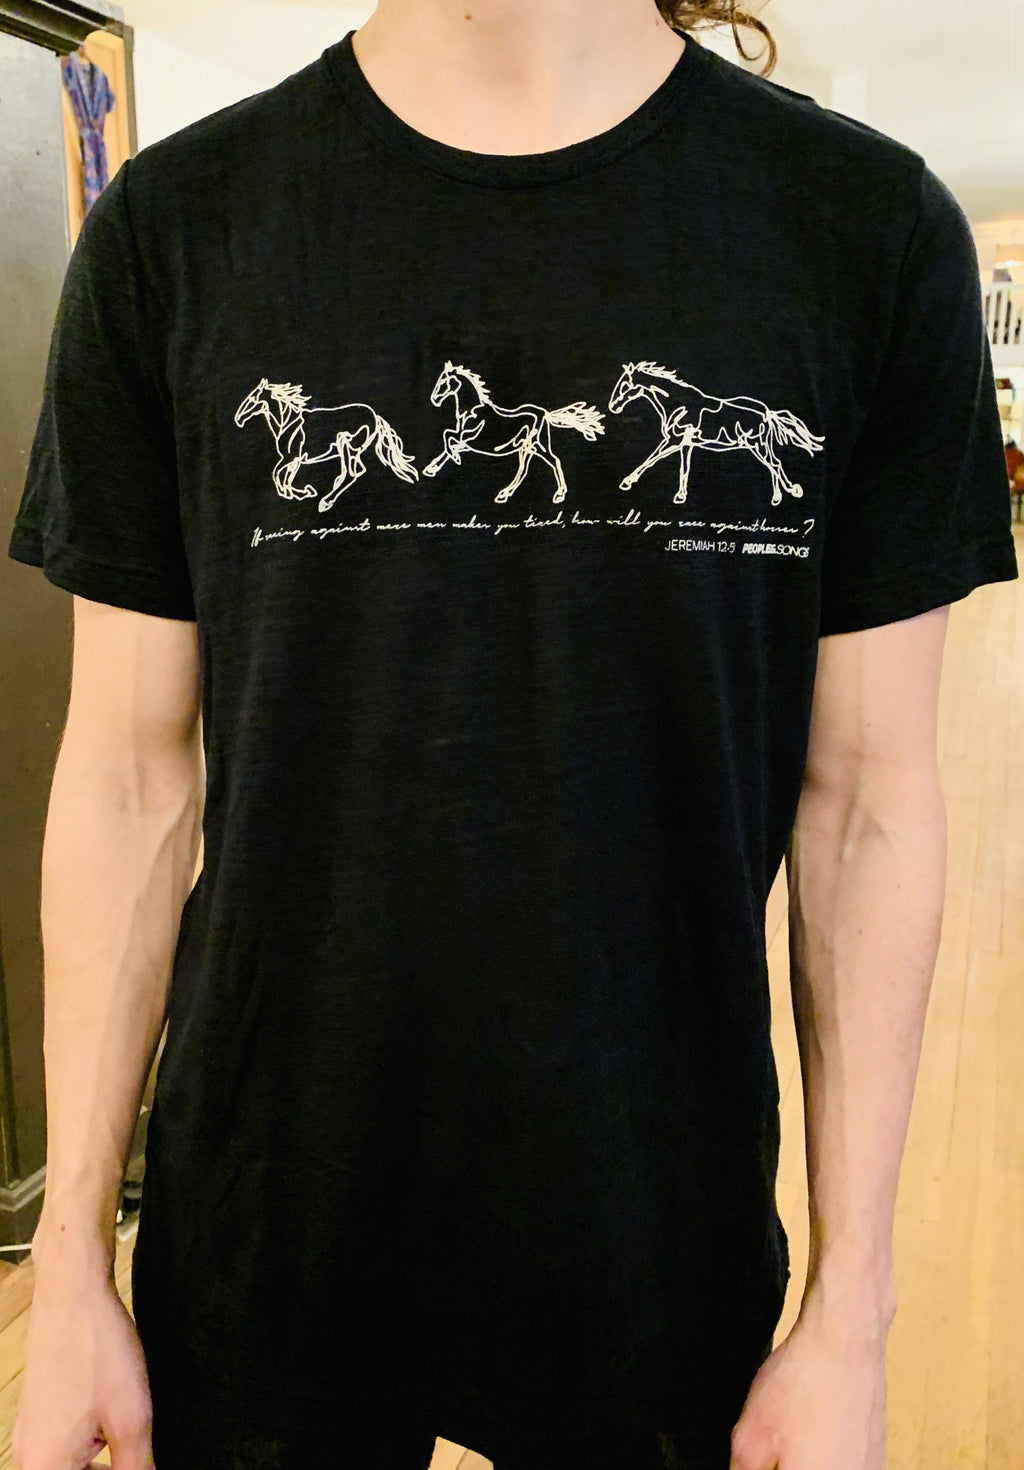 T-Shirt - Run with the Horses (Jer 12:5) - Chocolate Brown Short Sleeve